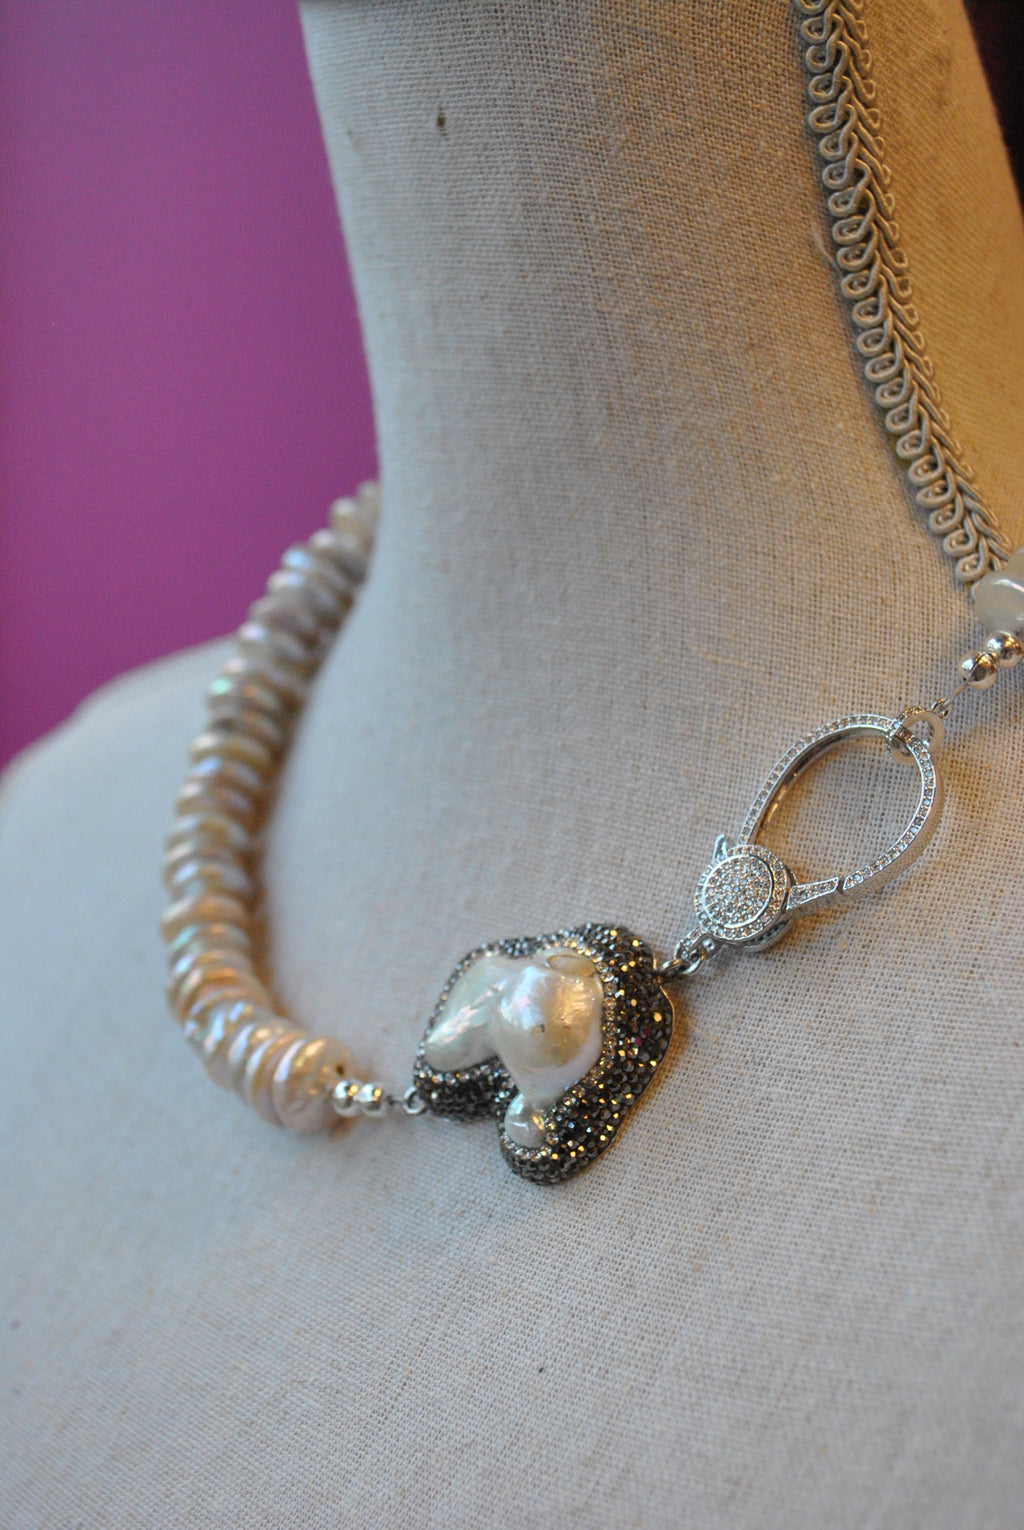 MOTHER OF PEARLS AND COIN FRESHWATER PEARLS ASYMMETRIC STATEMENT NECKLACE